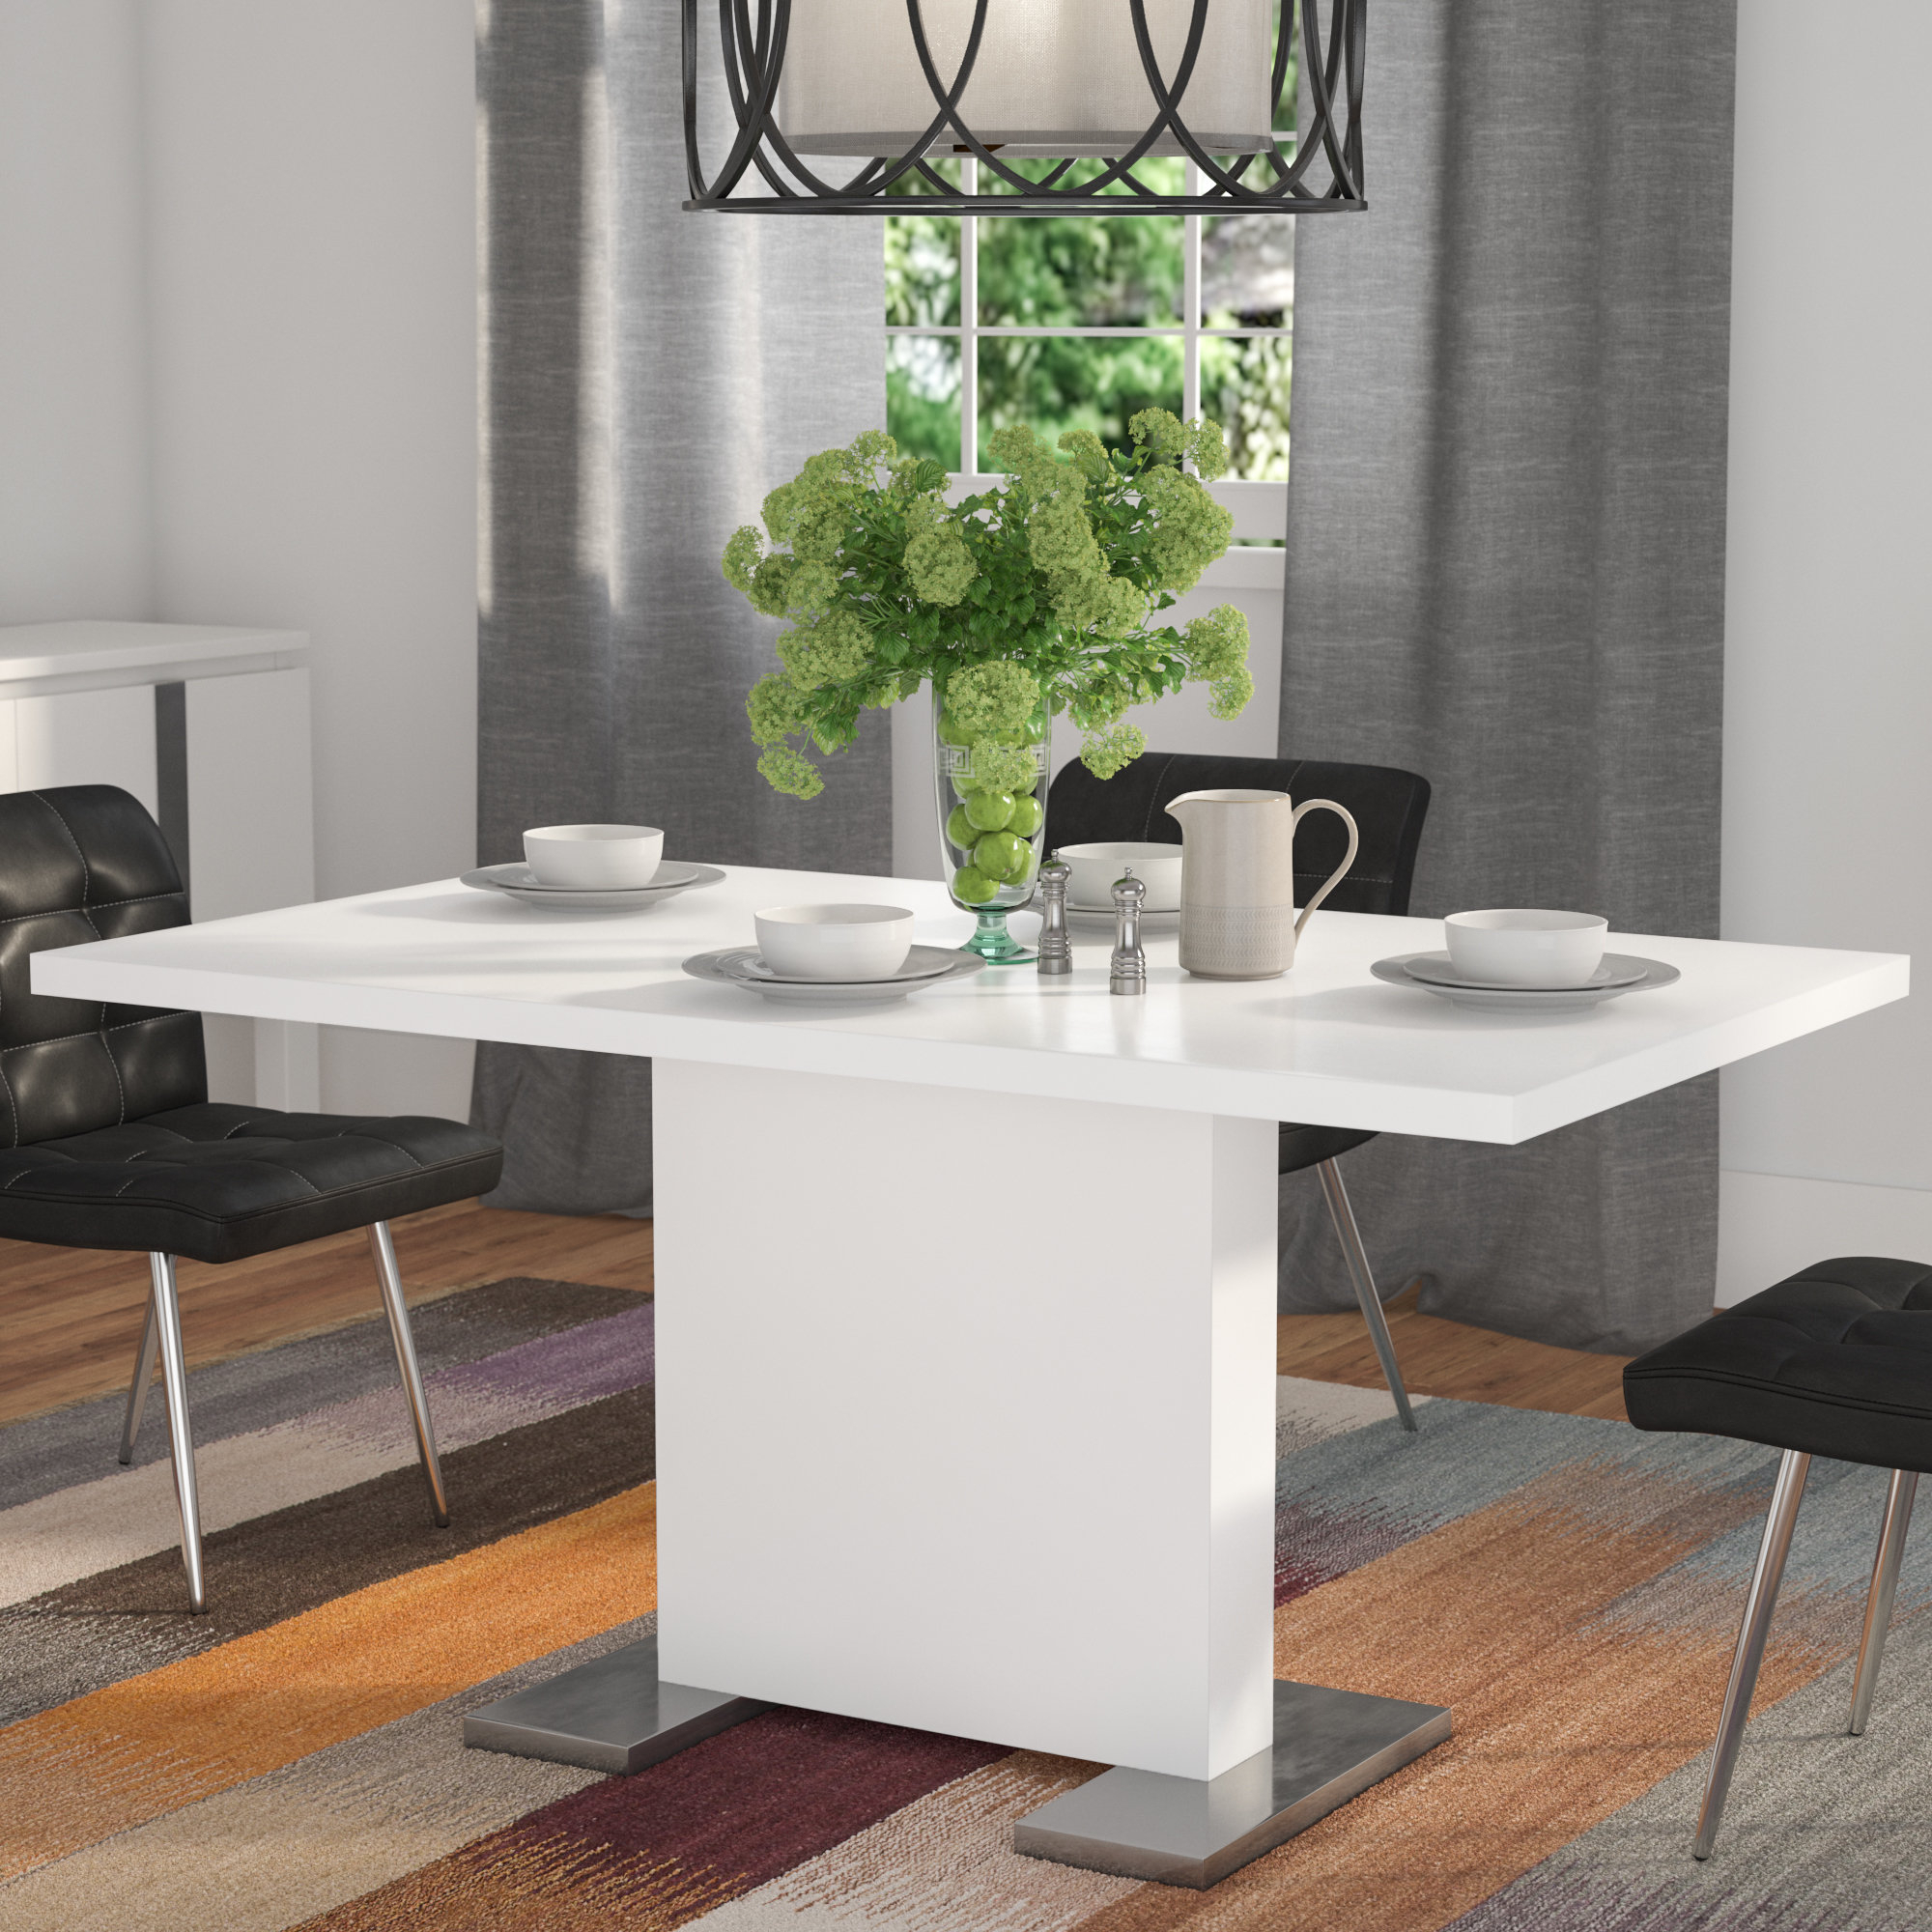 Moorehead 3 Piece Counter Height Dining Sets Regarding Trendy Latitude Run Moorhead Dining Table & Reviews (View 13 of 25)